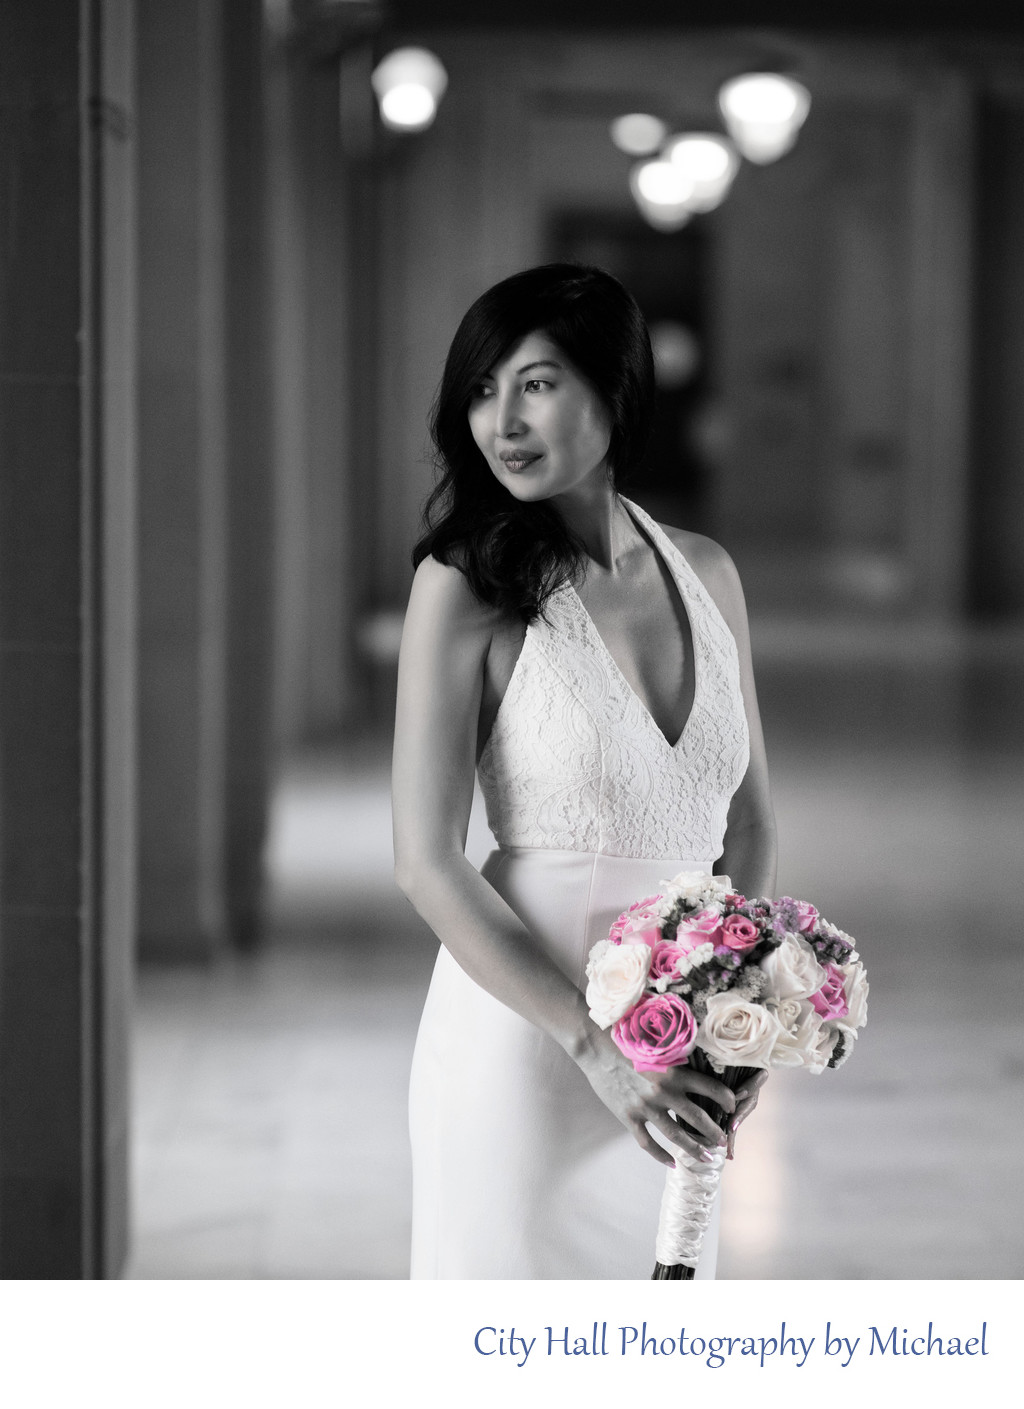 Wedding Photographer San Francisco City Hall - Asian Bride